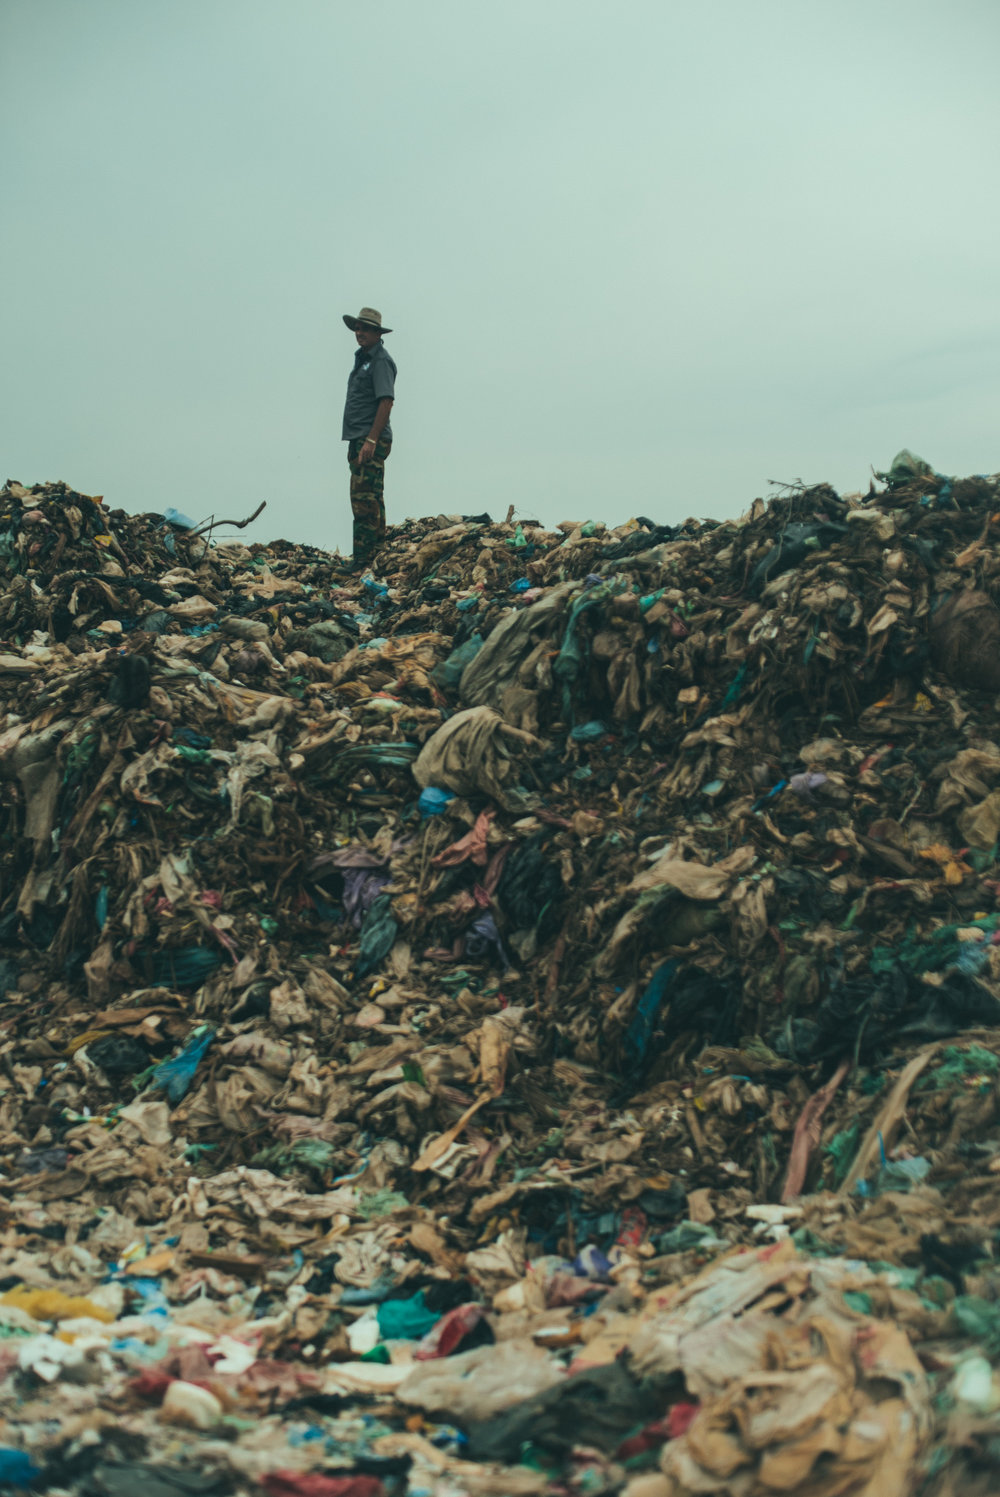 September 15th  - Yesterday, we visited a landfill in Siem Reap. Piles and piles of trash, stretching like an endless sea. Sandals, passport photocopies, plastic bags, forgotten stuffed animals, card decks, bras and all sorts of discarded every day use items, a sea of rubbish; and Jean Baptiste is standing on top of all pf that, a pioneer. However,  Jean Baptiste is not the only person in the landfill today, far from that. About 30 to 40 scavengers are crowding the site, cutting up scraps of vegetables and rotten fruits, collecting plastic bottles and iron pieces to sell to the Vietnamese. The scavengers live from our rubbish; they make three dollars a day. The work is dangerous for the pickers, the smells are toxic, the piles of trash are unstable; they walk in sandals among the broken shards. The methane gas blankets the landscape, the embodiment of an environmental grim reaper.